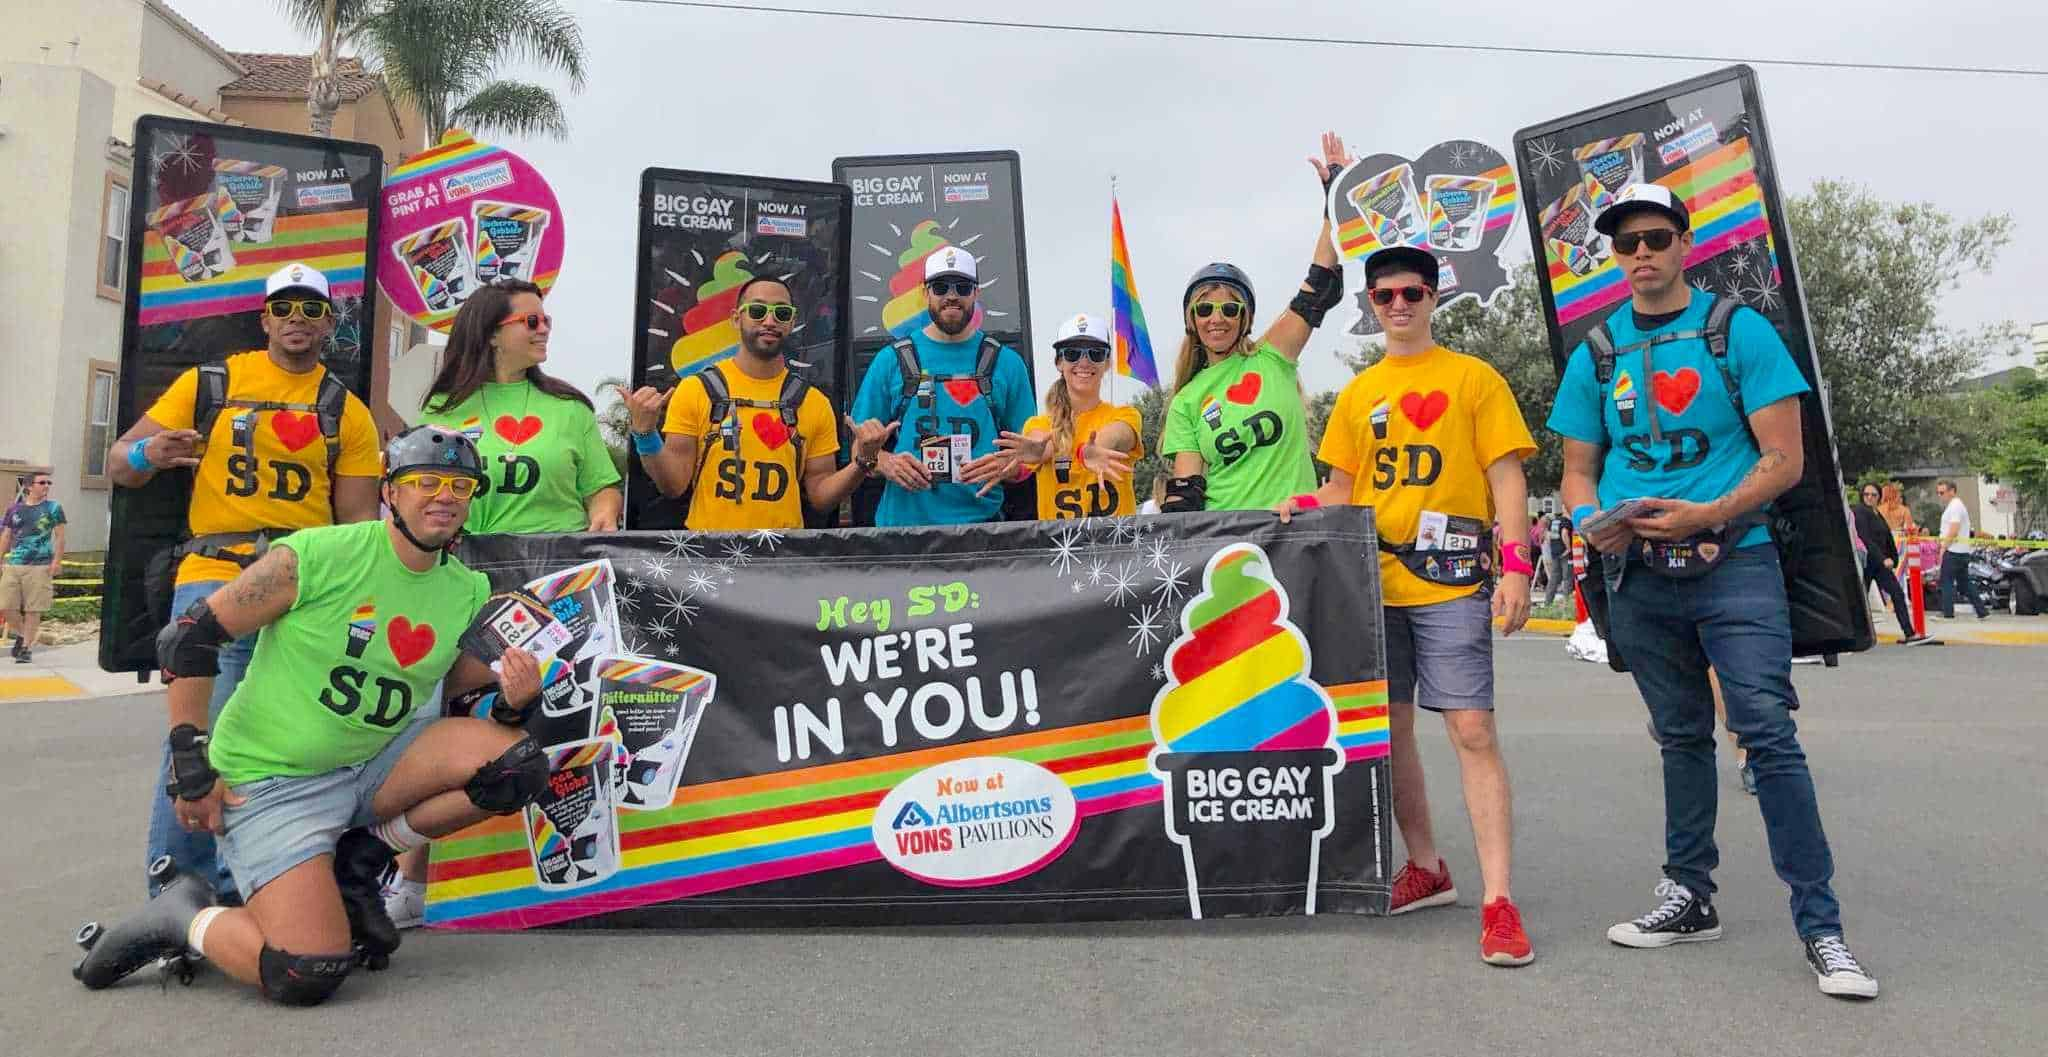 Big Gay Ice Cream SD Pride March Brand Activation - San Diego